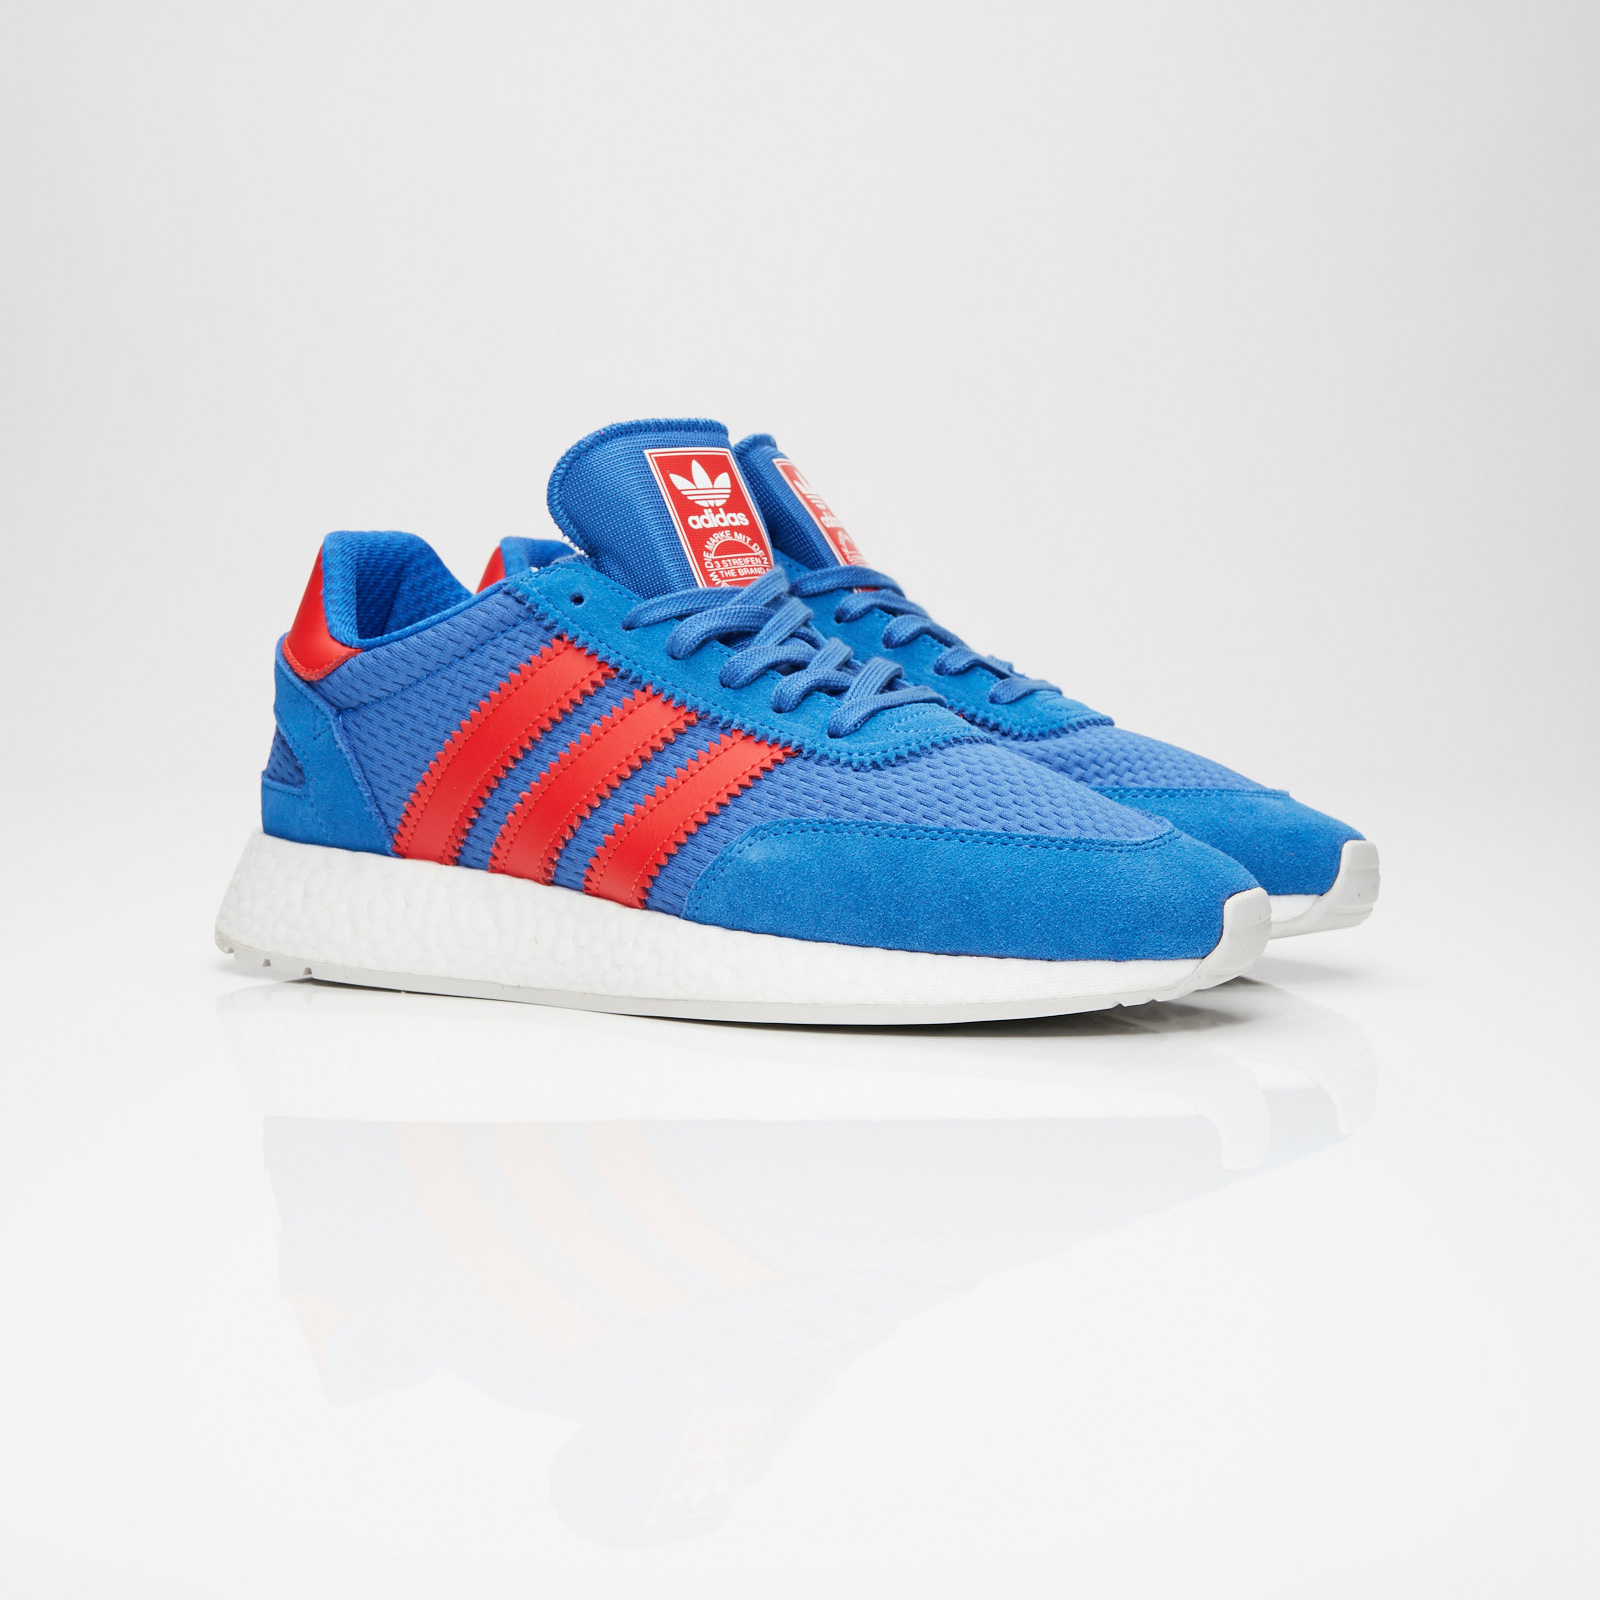 01-adidas-i-5923-hi-res-blue-red-d96605